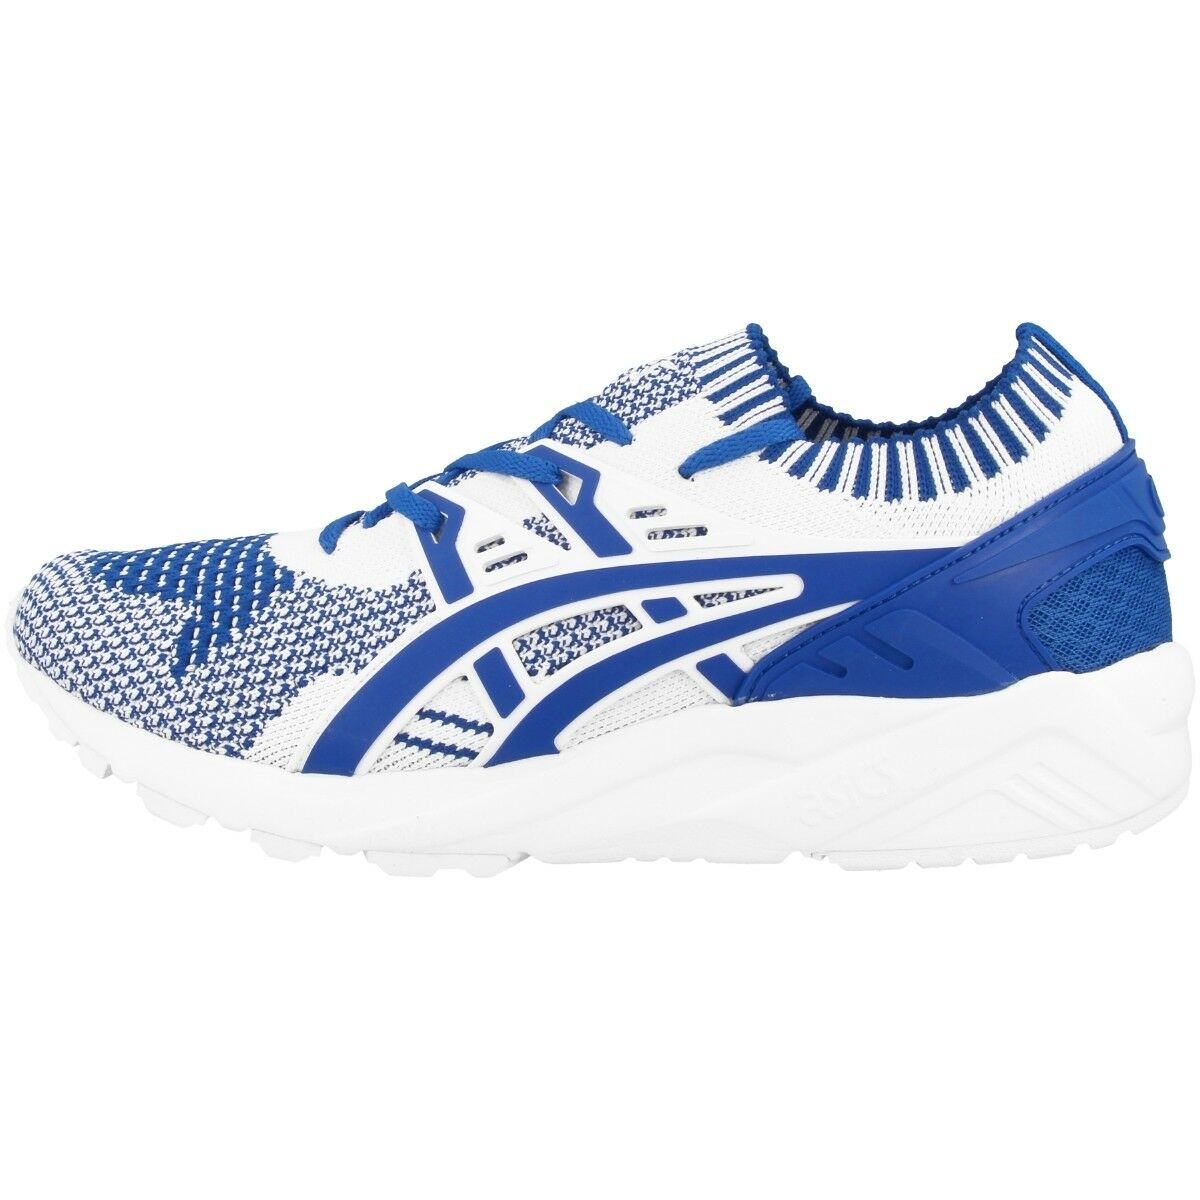 Asics Gel-Kayano Trainer Knit Imperial Zapatos OCIO DEPORTE ZAPATILLAS Imperial Knit 6f627f